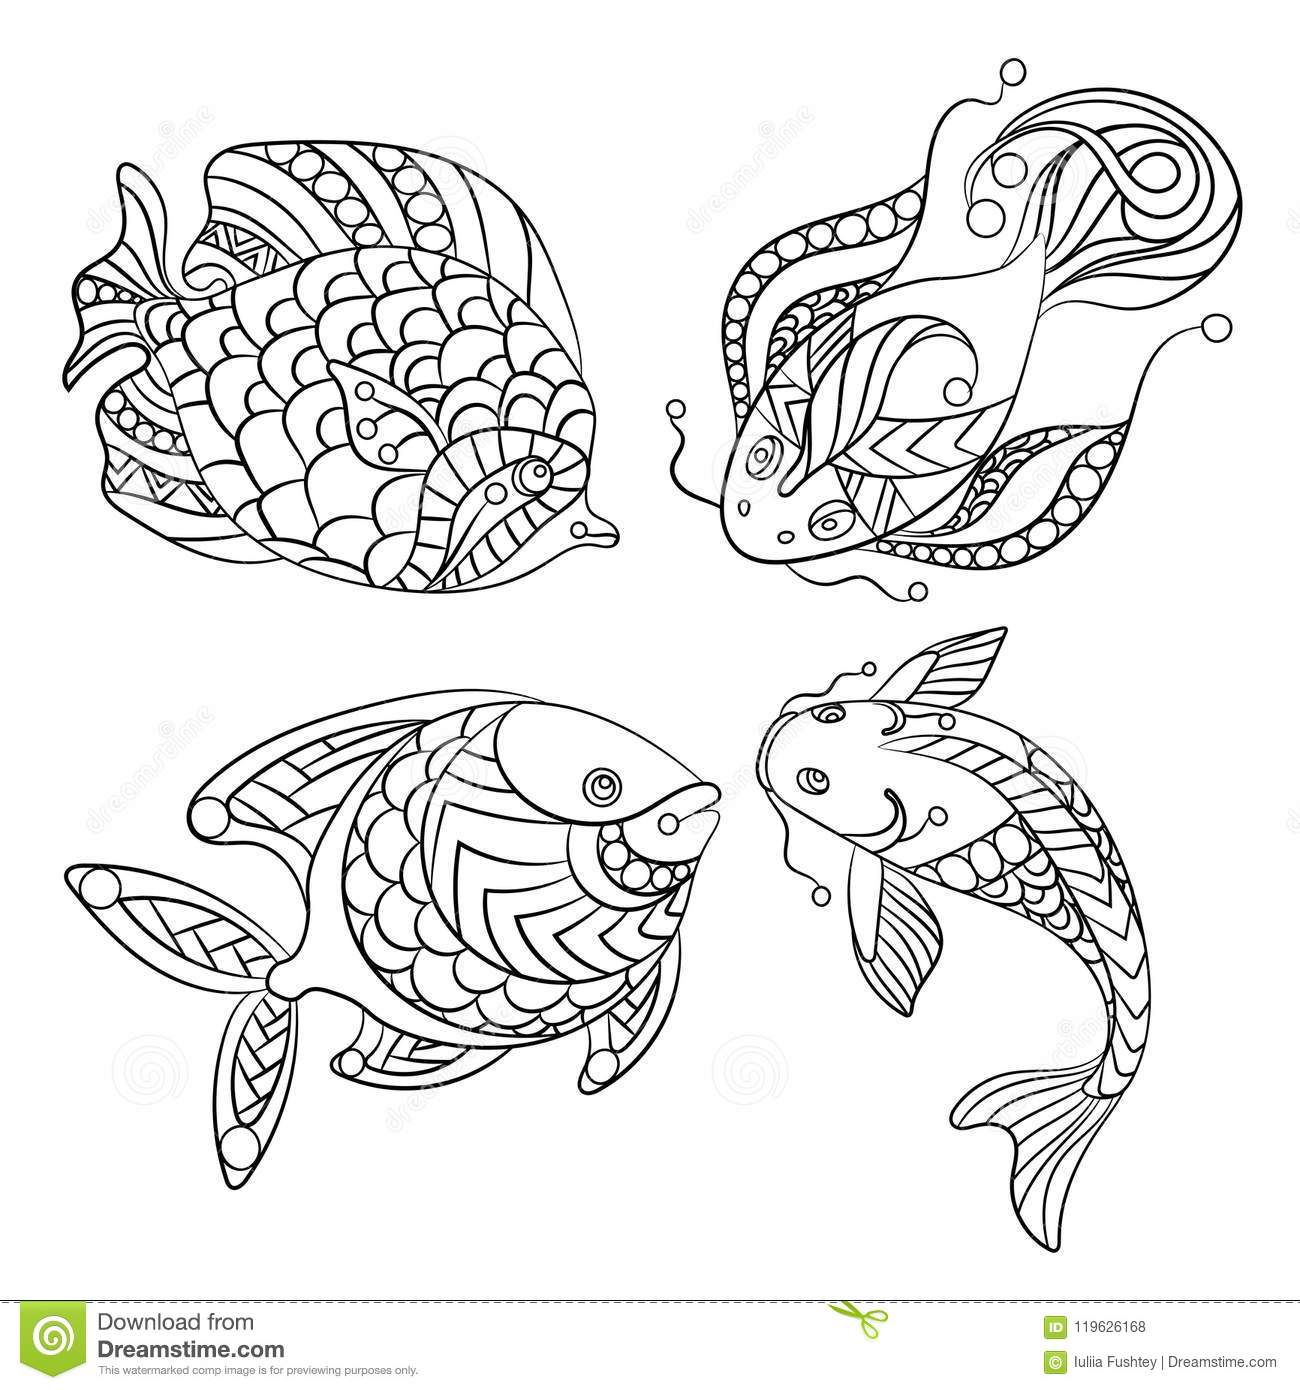 ocean fish coloring pages Coloring4free - Coloring4Free.com | 1390x1300